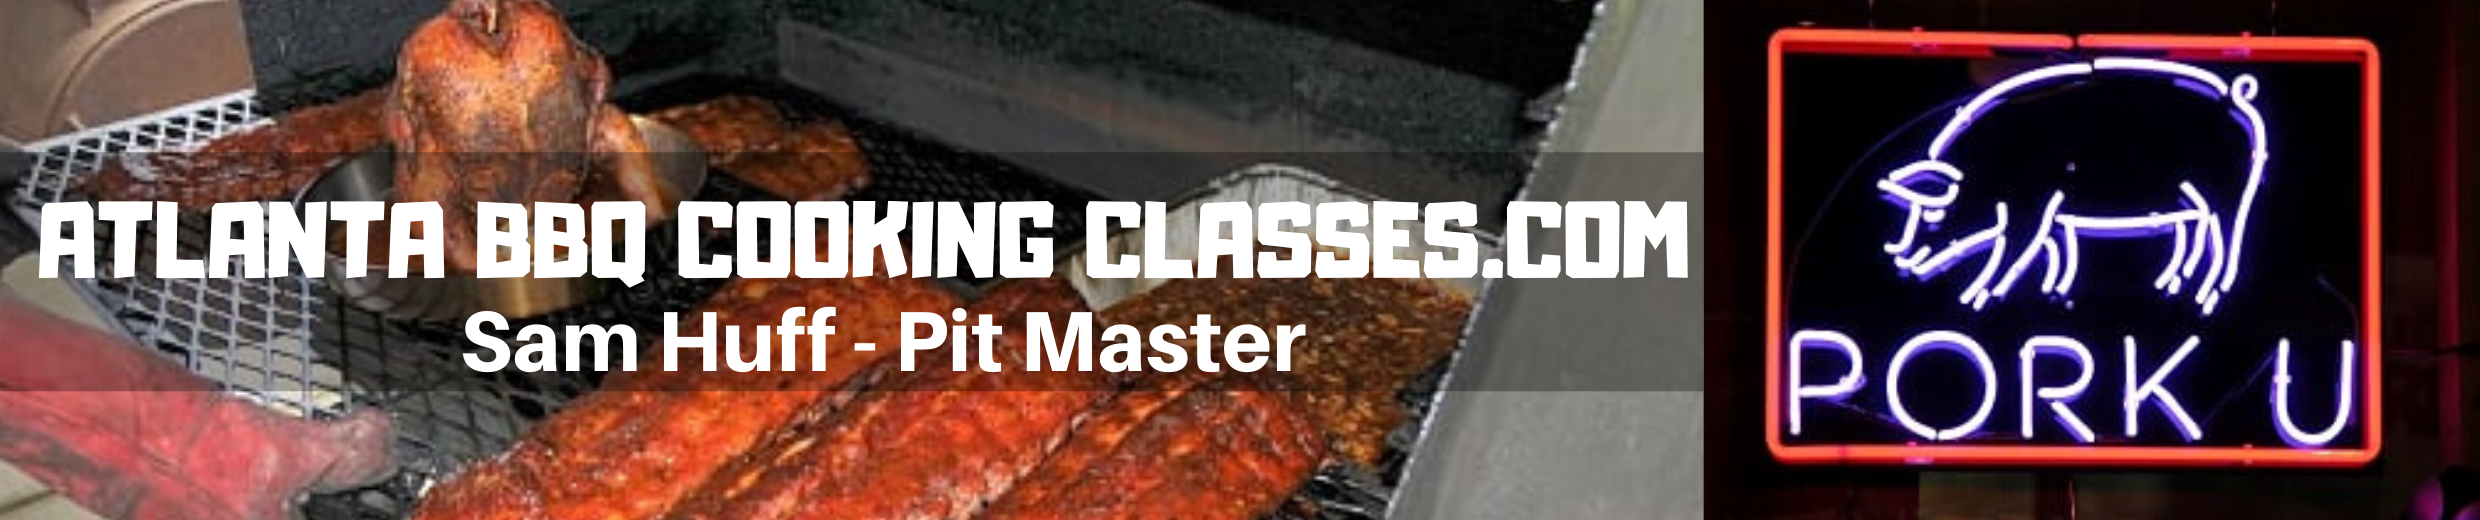 Atlanta BBQ Cooking Classess